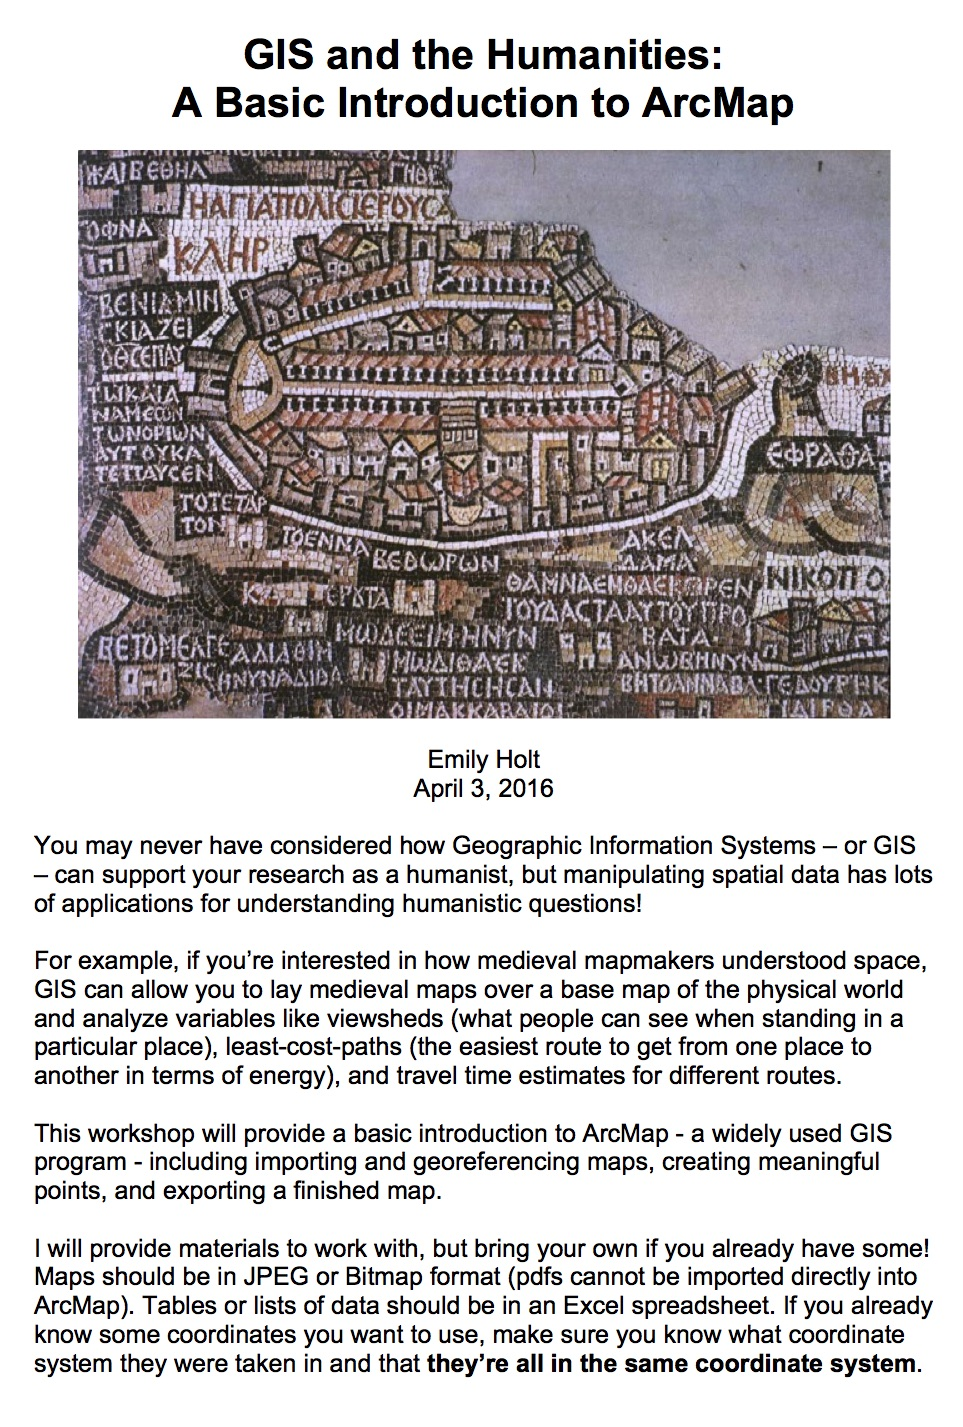 Holt GIS workshop flyer